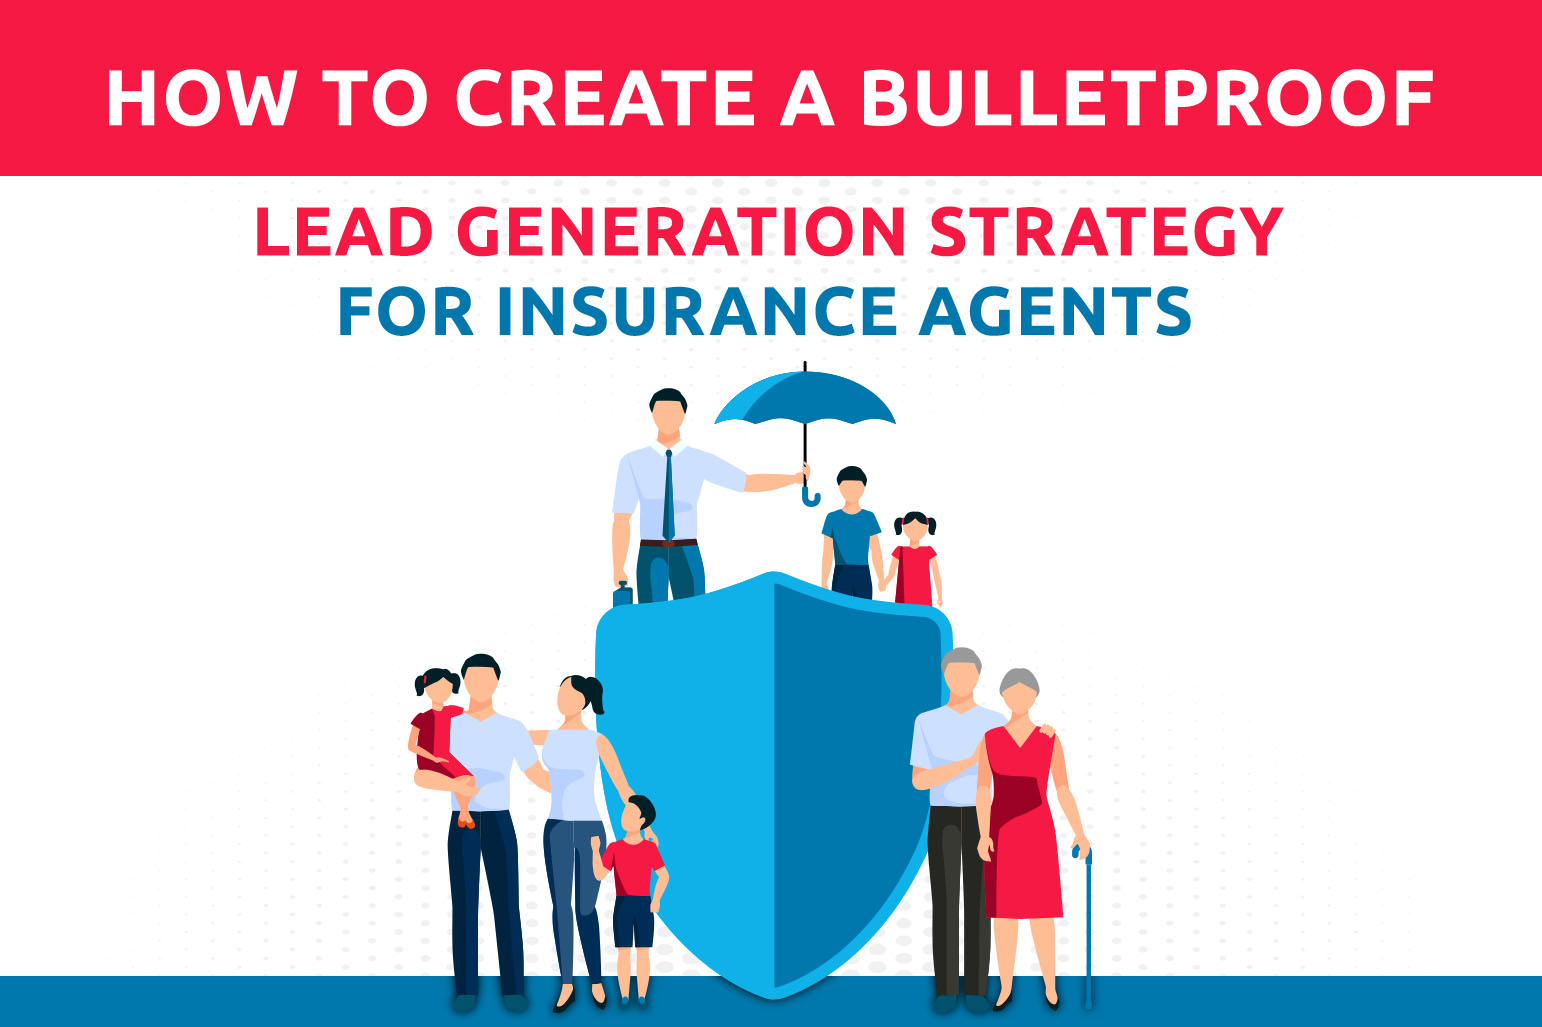 How To Create A Bulletproof Lead Generation Strategy For Insurance Agents